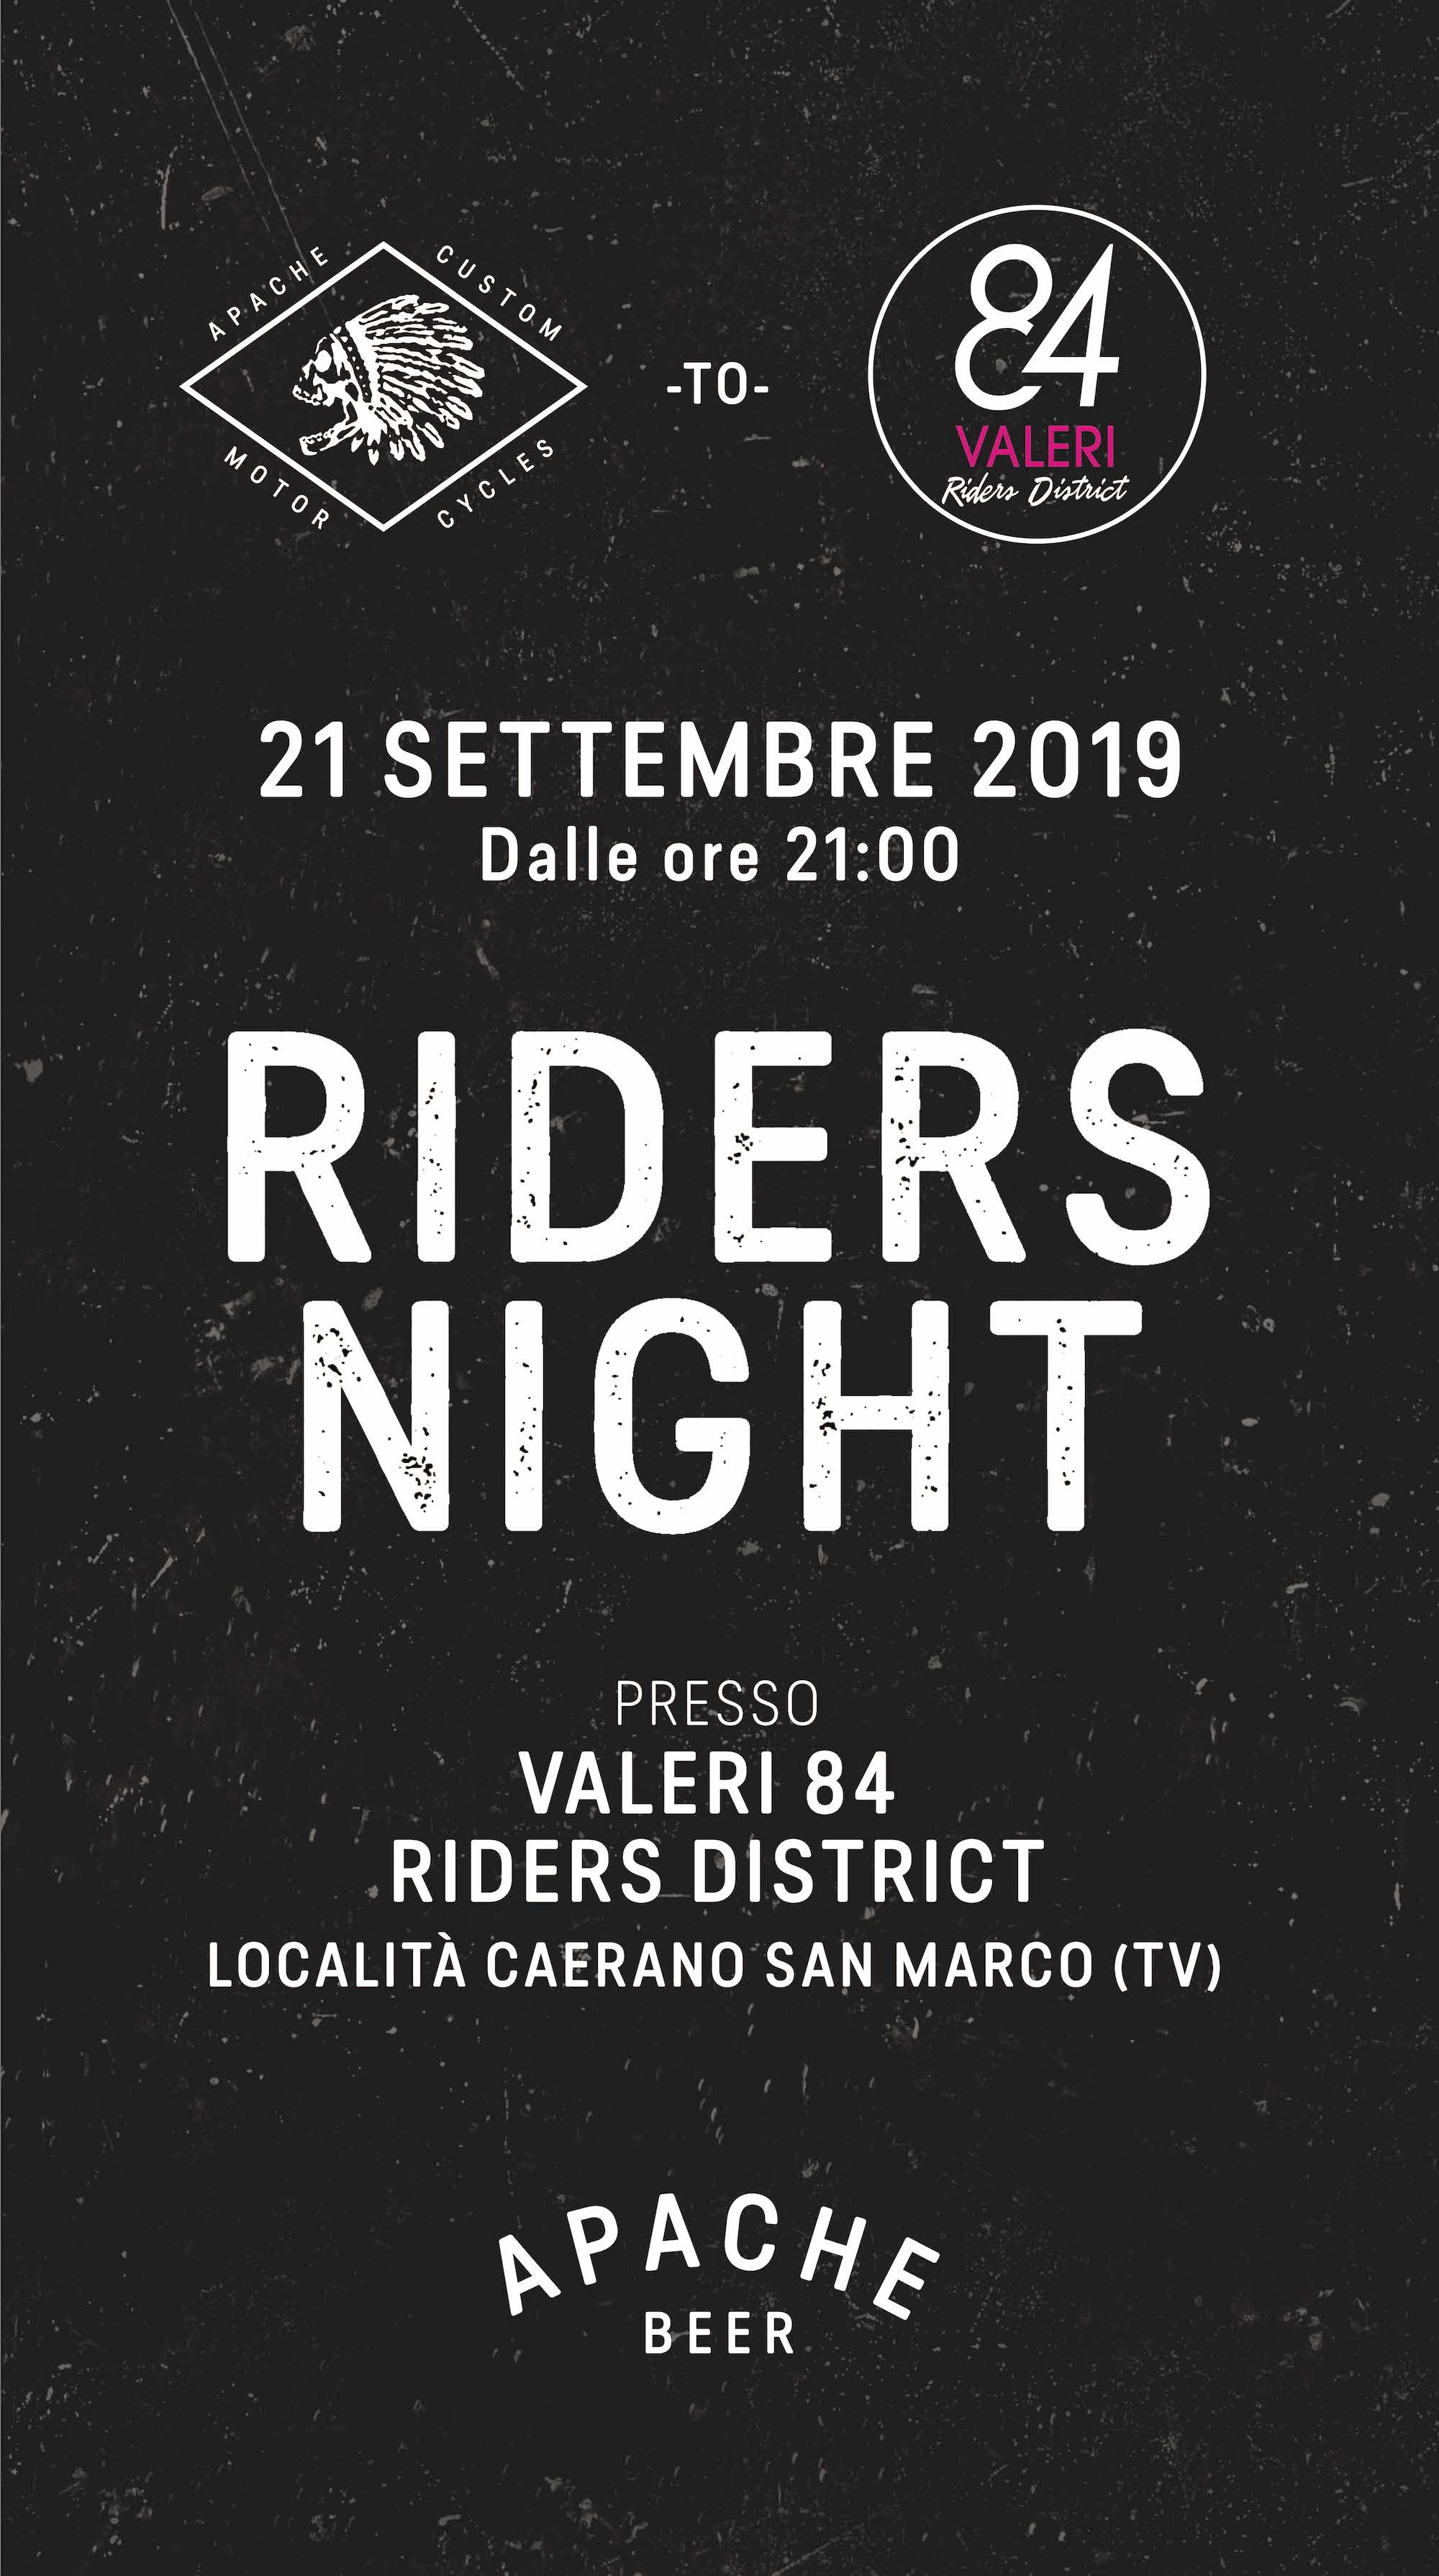 riders night 2019 apache custom motorcycles valeri 84 evento